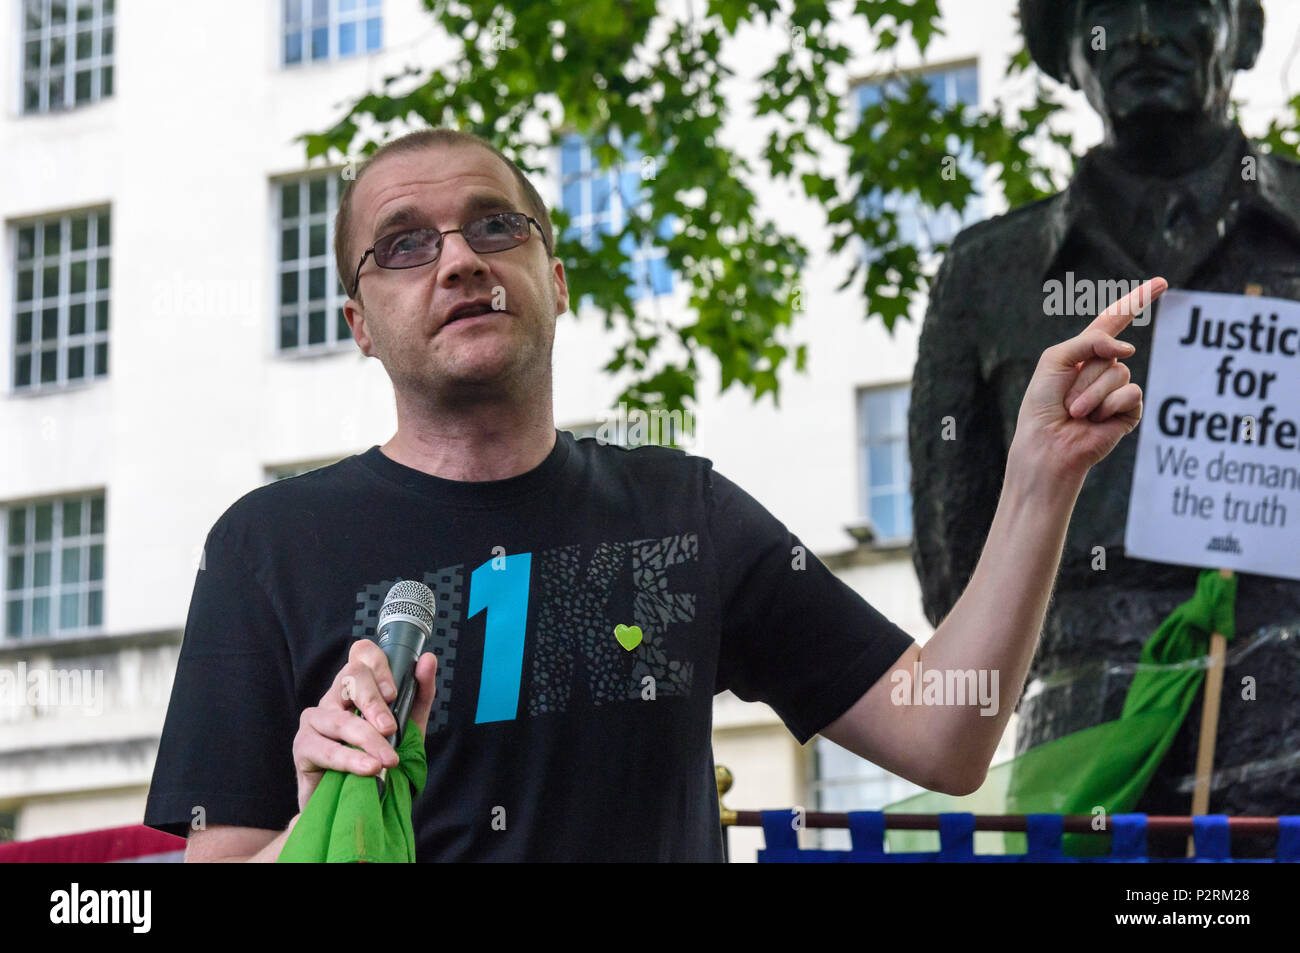 London, UK. 16th June 2018. Local resident Joe Delaney, displaced by the fire and still in temporary accommodation speaks at the protest at Downing St in solidarity with the 72 killed and the survivors of the Grenfell fire a year ago organised by Justice4Grenfell and the FBU (Fire Brigades Union.) After some speeches they marched to the Home Office for a brief protest before returning to Downing St for more speeches. Speakers complained of the many promises made by Theresa May which have been broken, despite her promise all survivors would be rehoused in 3 weeks, a year later 50% of survivors  - Stock Image